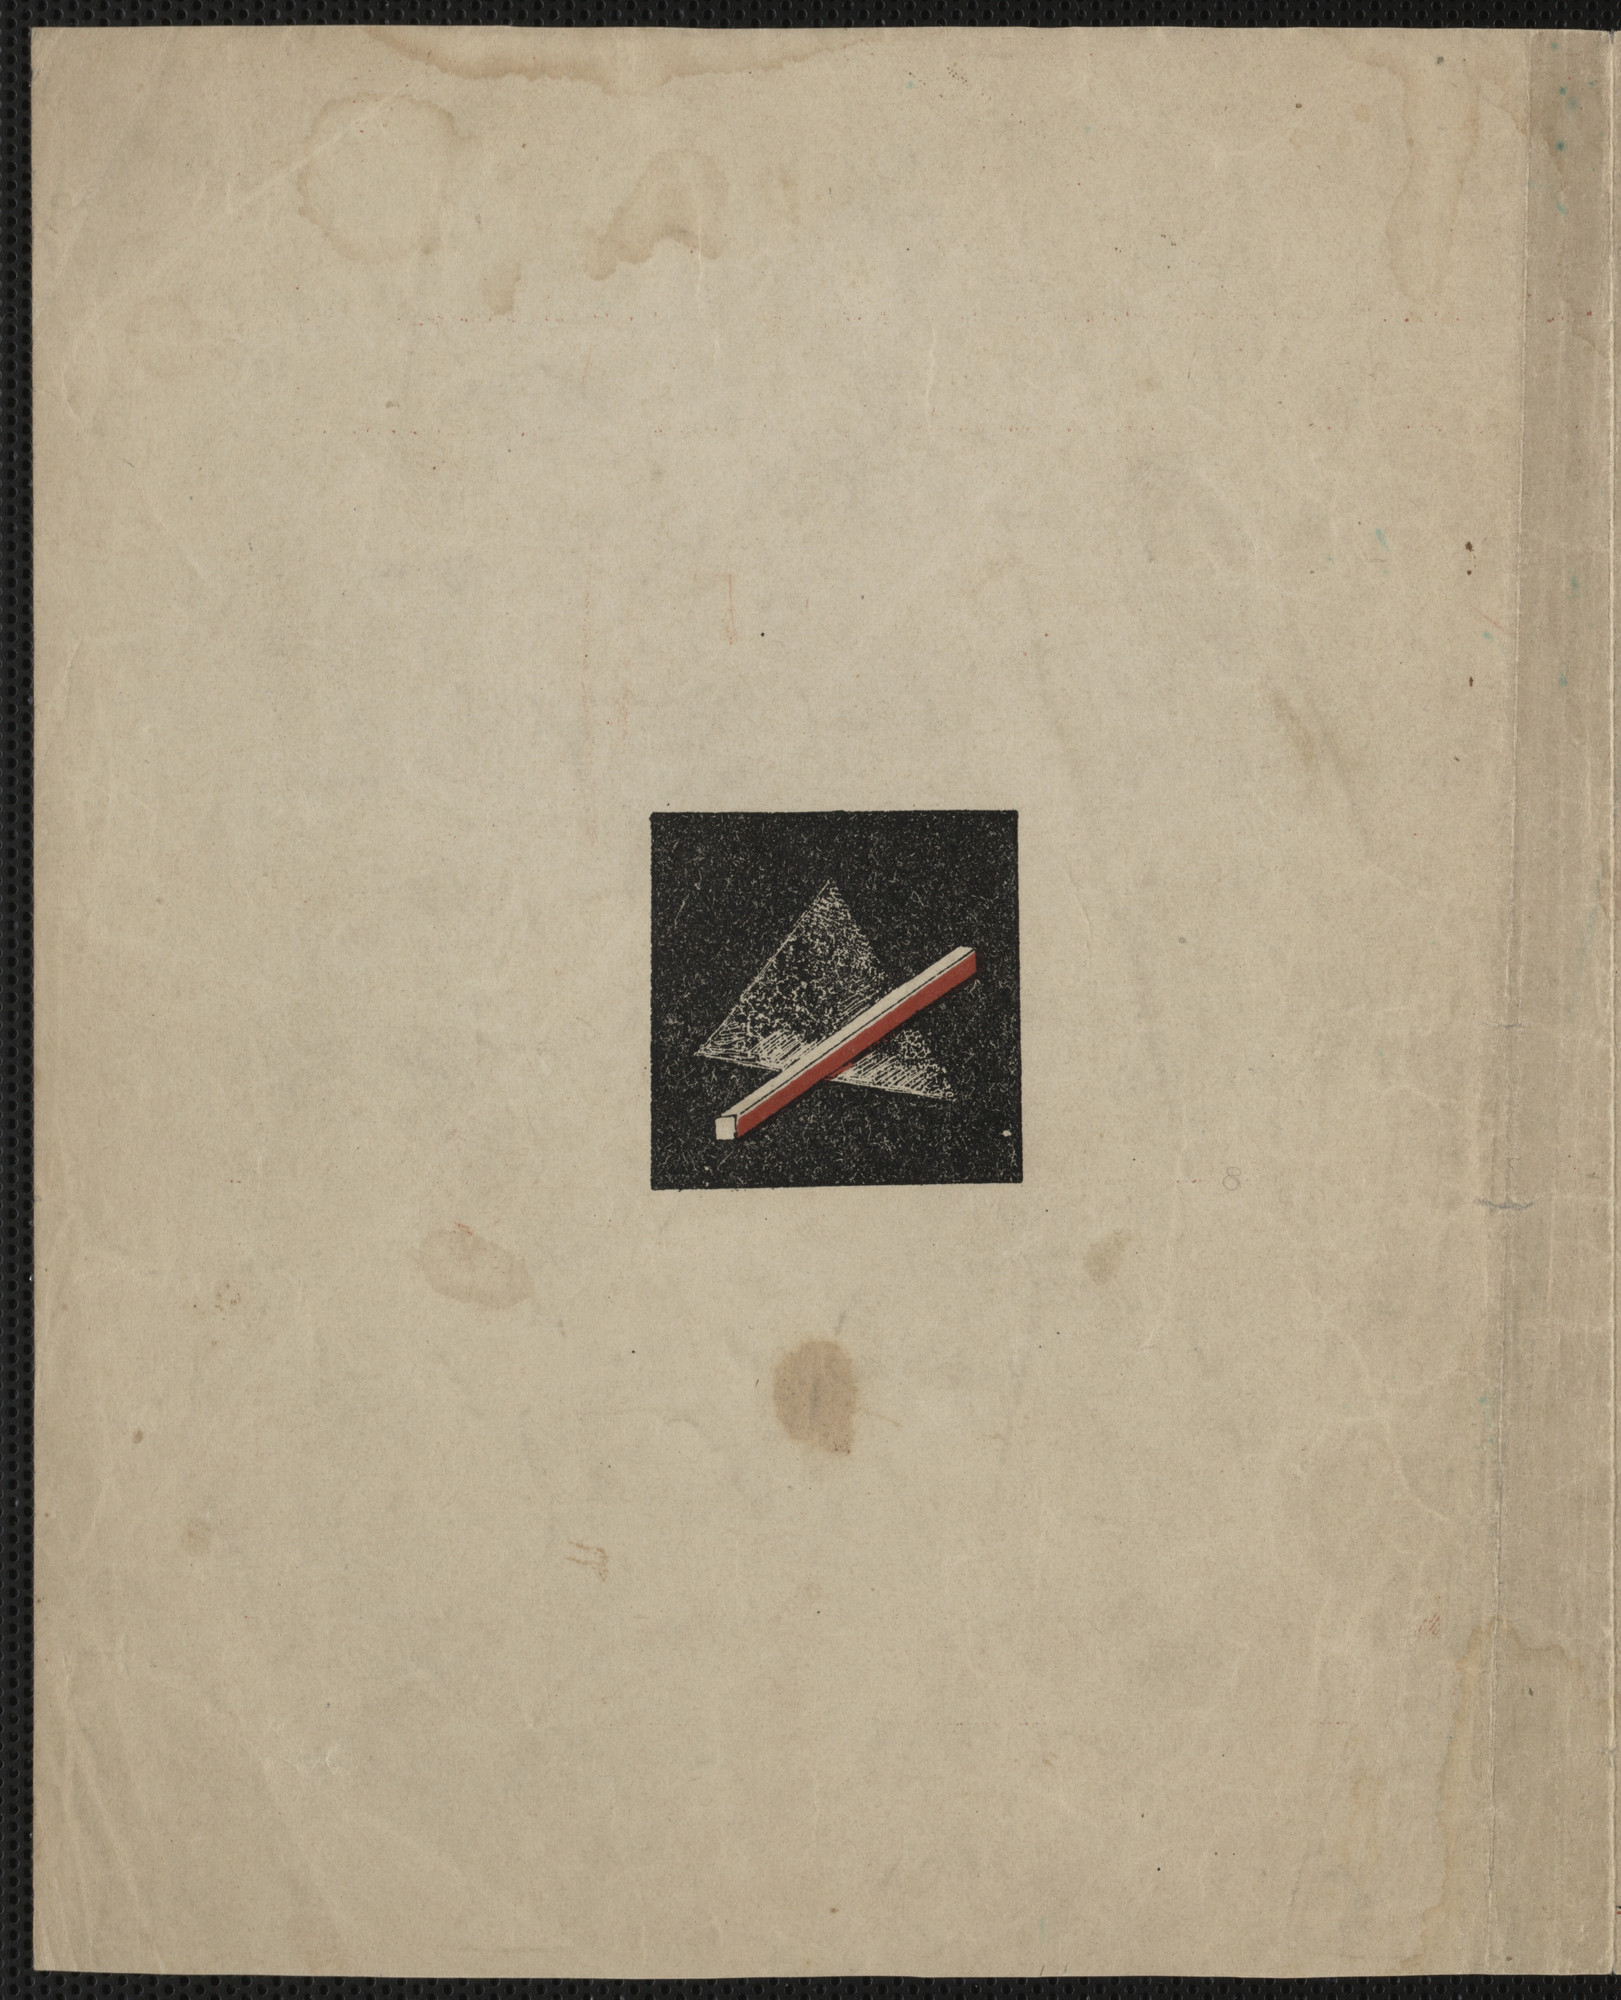 El Lissitzky. Cover from Komitet po bor'be s bezrabotitsei (Committee to Combat Unemployment). 1919